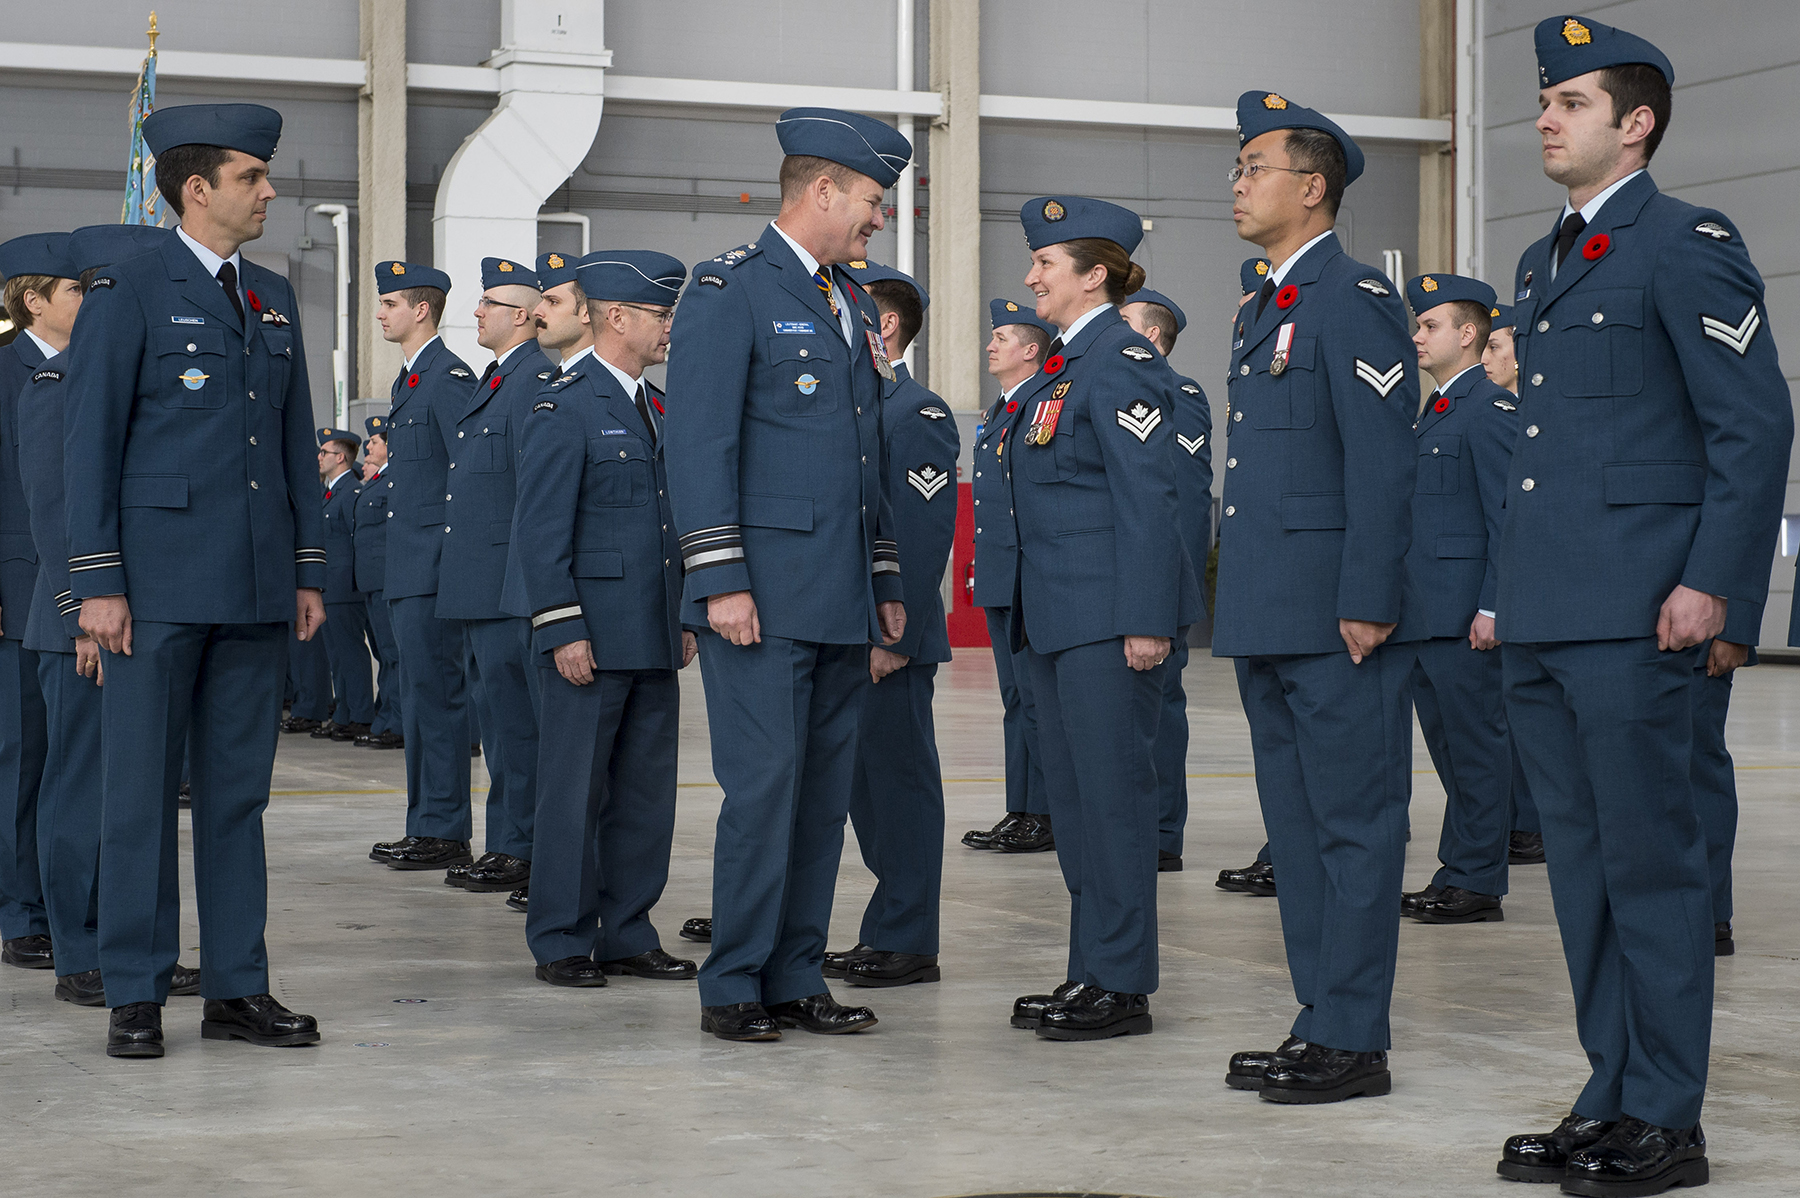 Royal Canadian Air Force commander Lieutenant-General Michael Hood (centre) and Brigadier-General David Lowthian (centre left), chief of staff to the Chief of the Defence Staff, inspect members of 429 Transport Squadron on parade on November 7, 2017, for the squadron's 75th anniversary. Brigadier-General Lowthian is a former commanding officer of 429 Squadron, and oversaw the introduction of the CC-177 Globemaster III fleet. PHOTO: Ordinary Seaman Paul Green, TN05-2017-0661-082